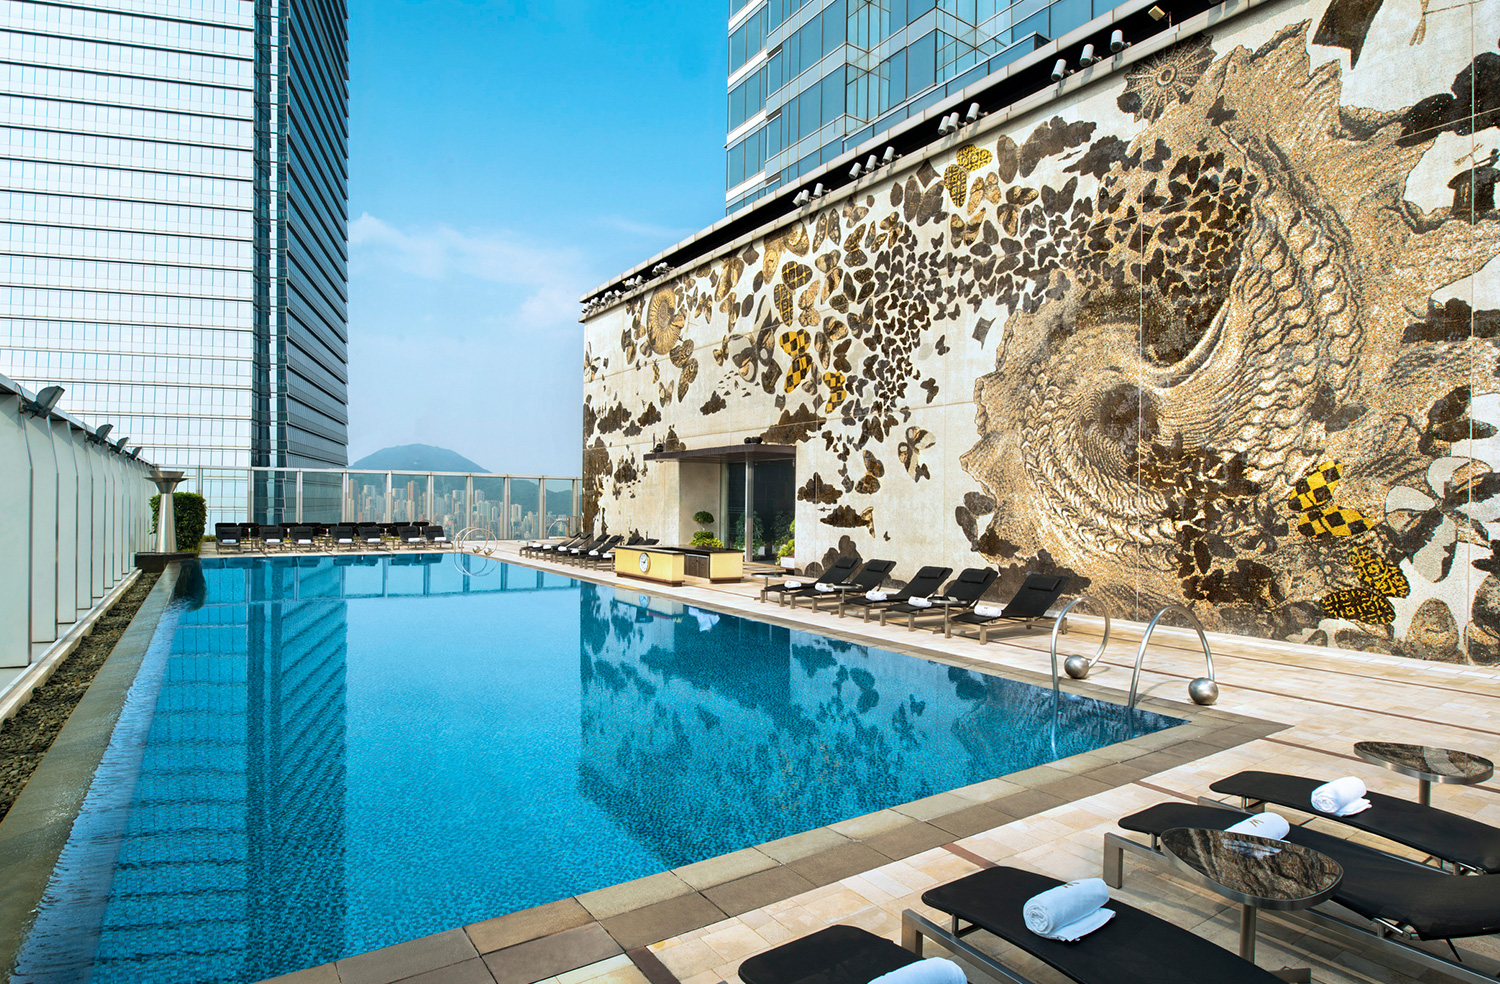 W Hong Kong pool, Australia travel blog, Hong Kong rooftop pool,